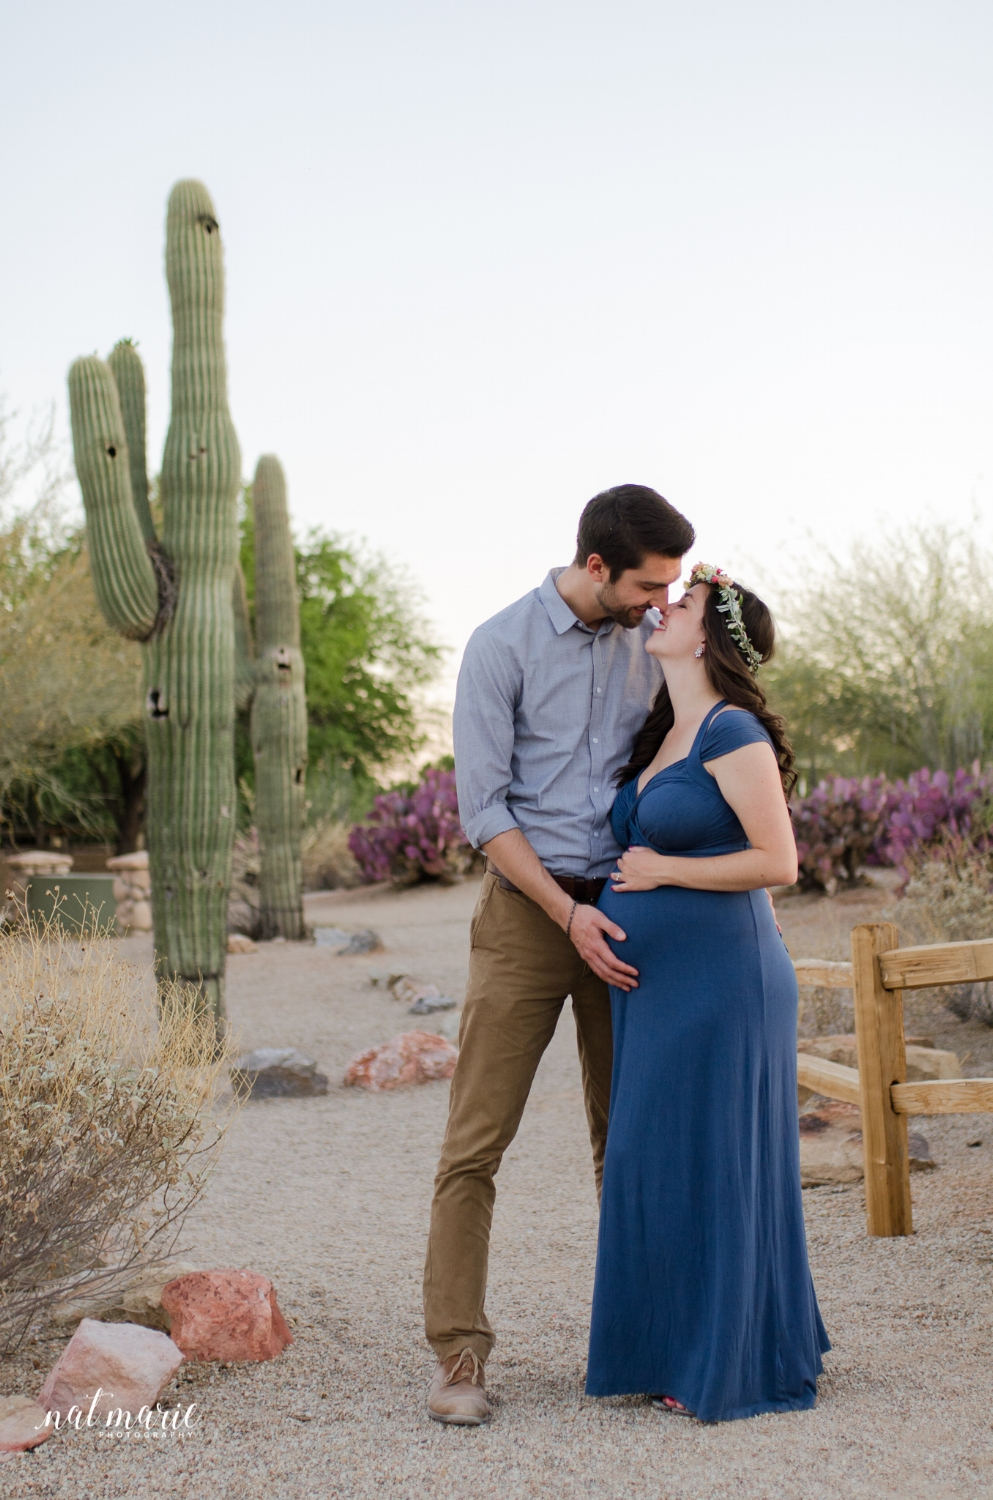 Gilbert, AZ Maternity Session - Light & Airy Photos